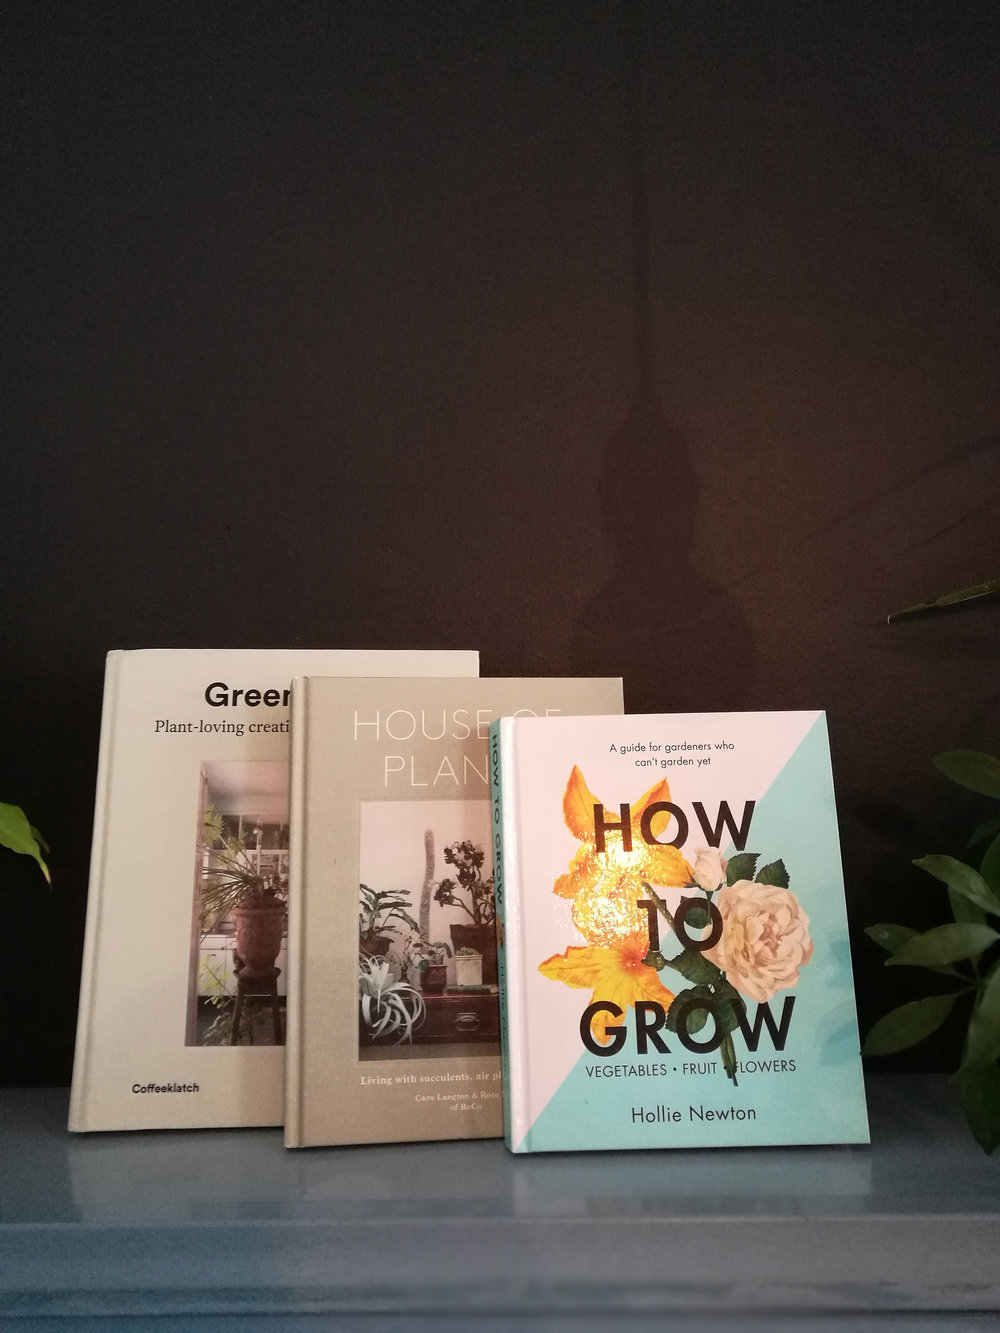 Books - A selection of books about plants, growing and interior design.